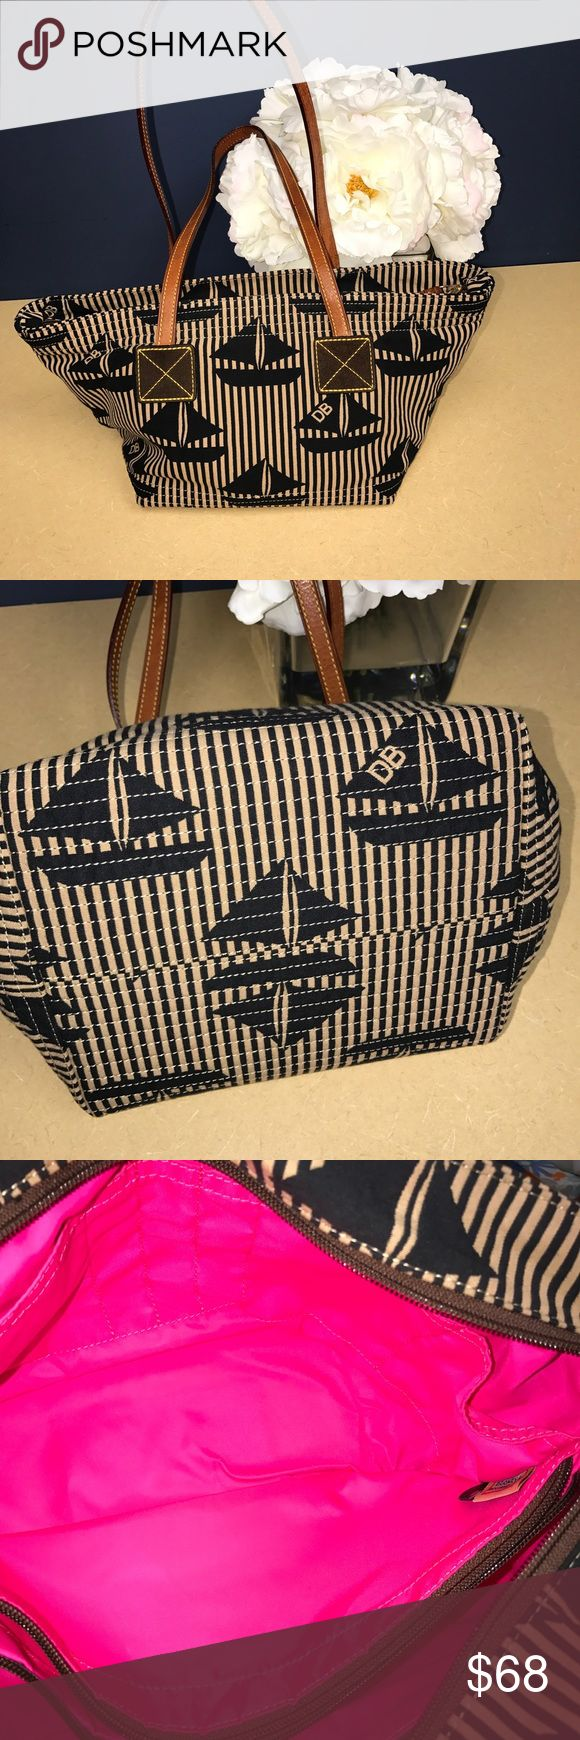 Donney & Bourke Sailboat Tote BNWOT. Hot pink interior. Excellent condition Dooney & Bourke Bags Totes